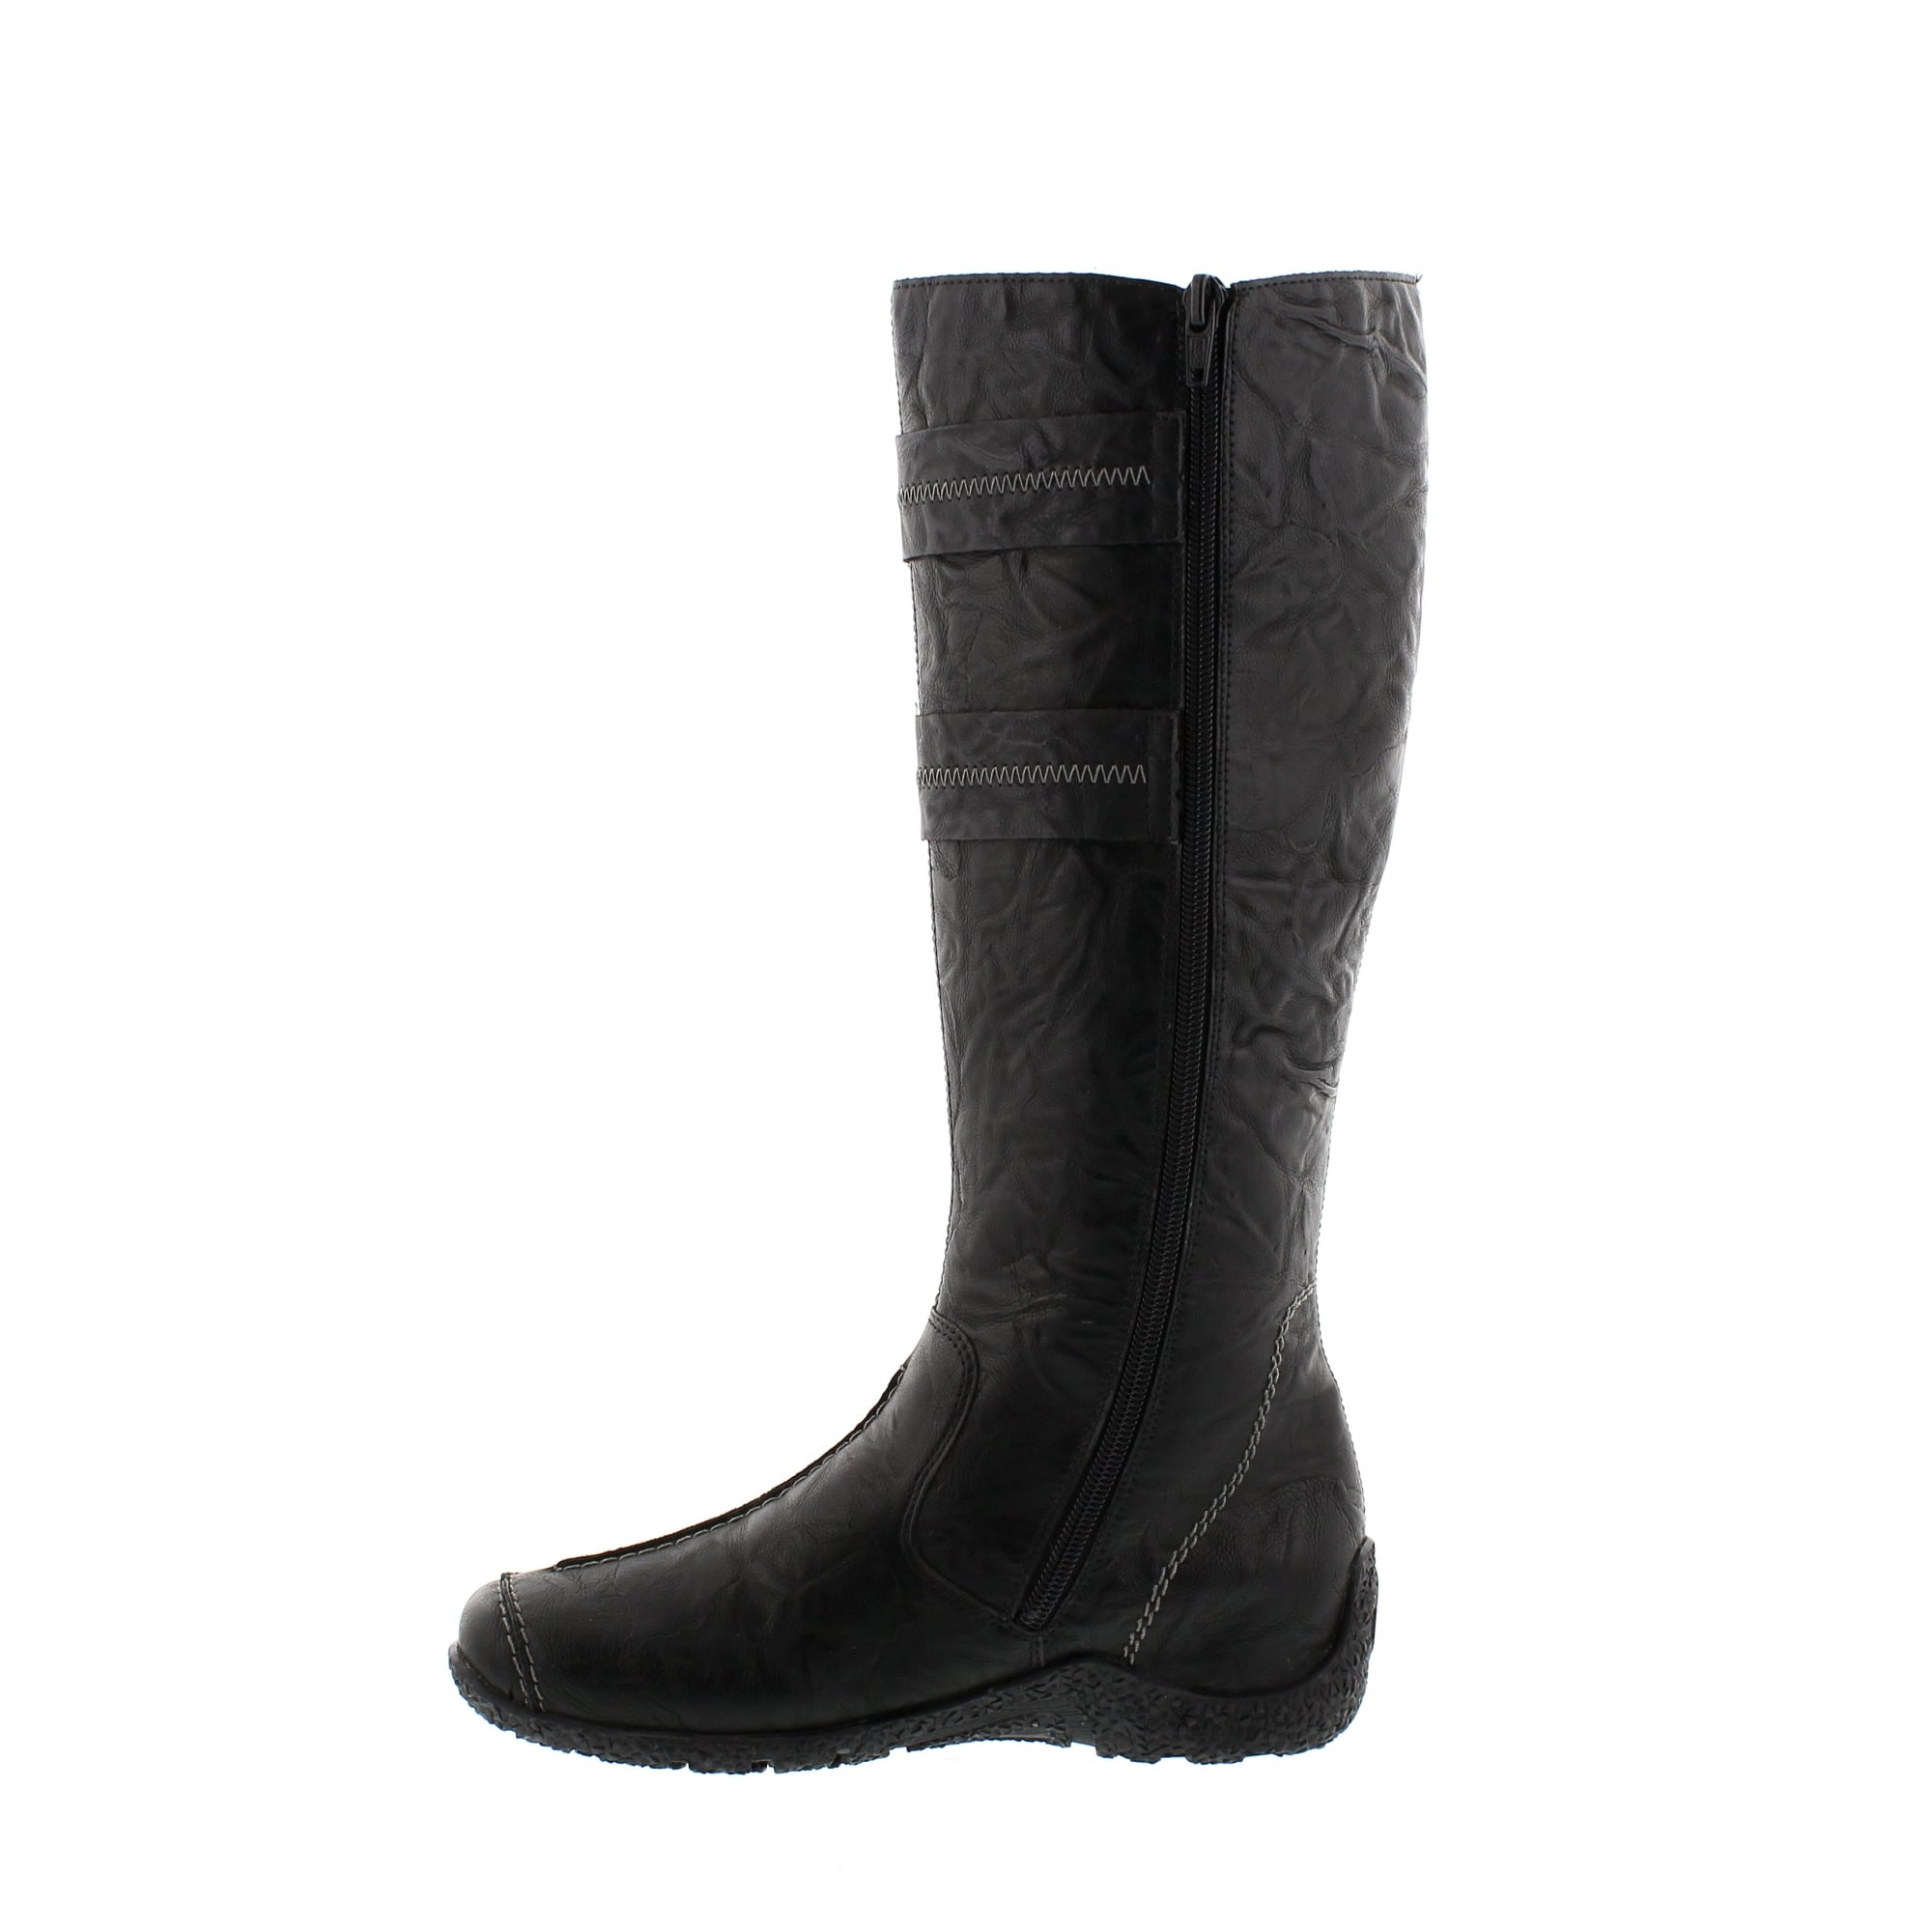 Rieker Astrid 79983 Synthetic Casual Calf Length Boots Womens Boots